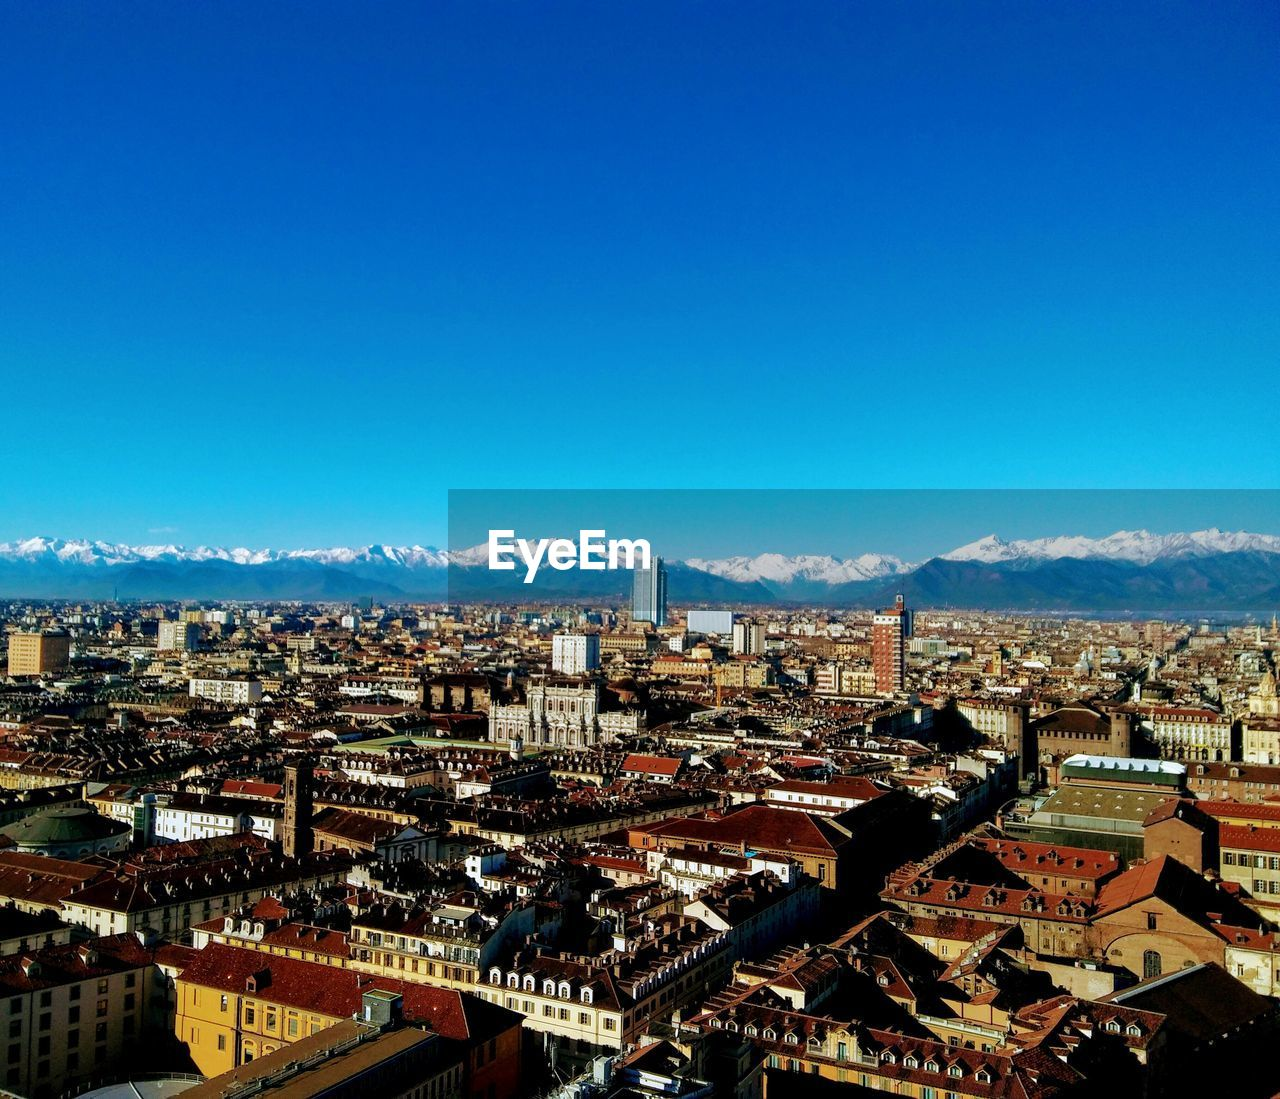 architecture, building exterior, cityscape, built structure, crowded, residential district, mountain, high angle view, residential building, city, day, copy space, blue, outdoors, mountain range, sky, town, roof, community, clear sky, beauty in nature, nature